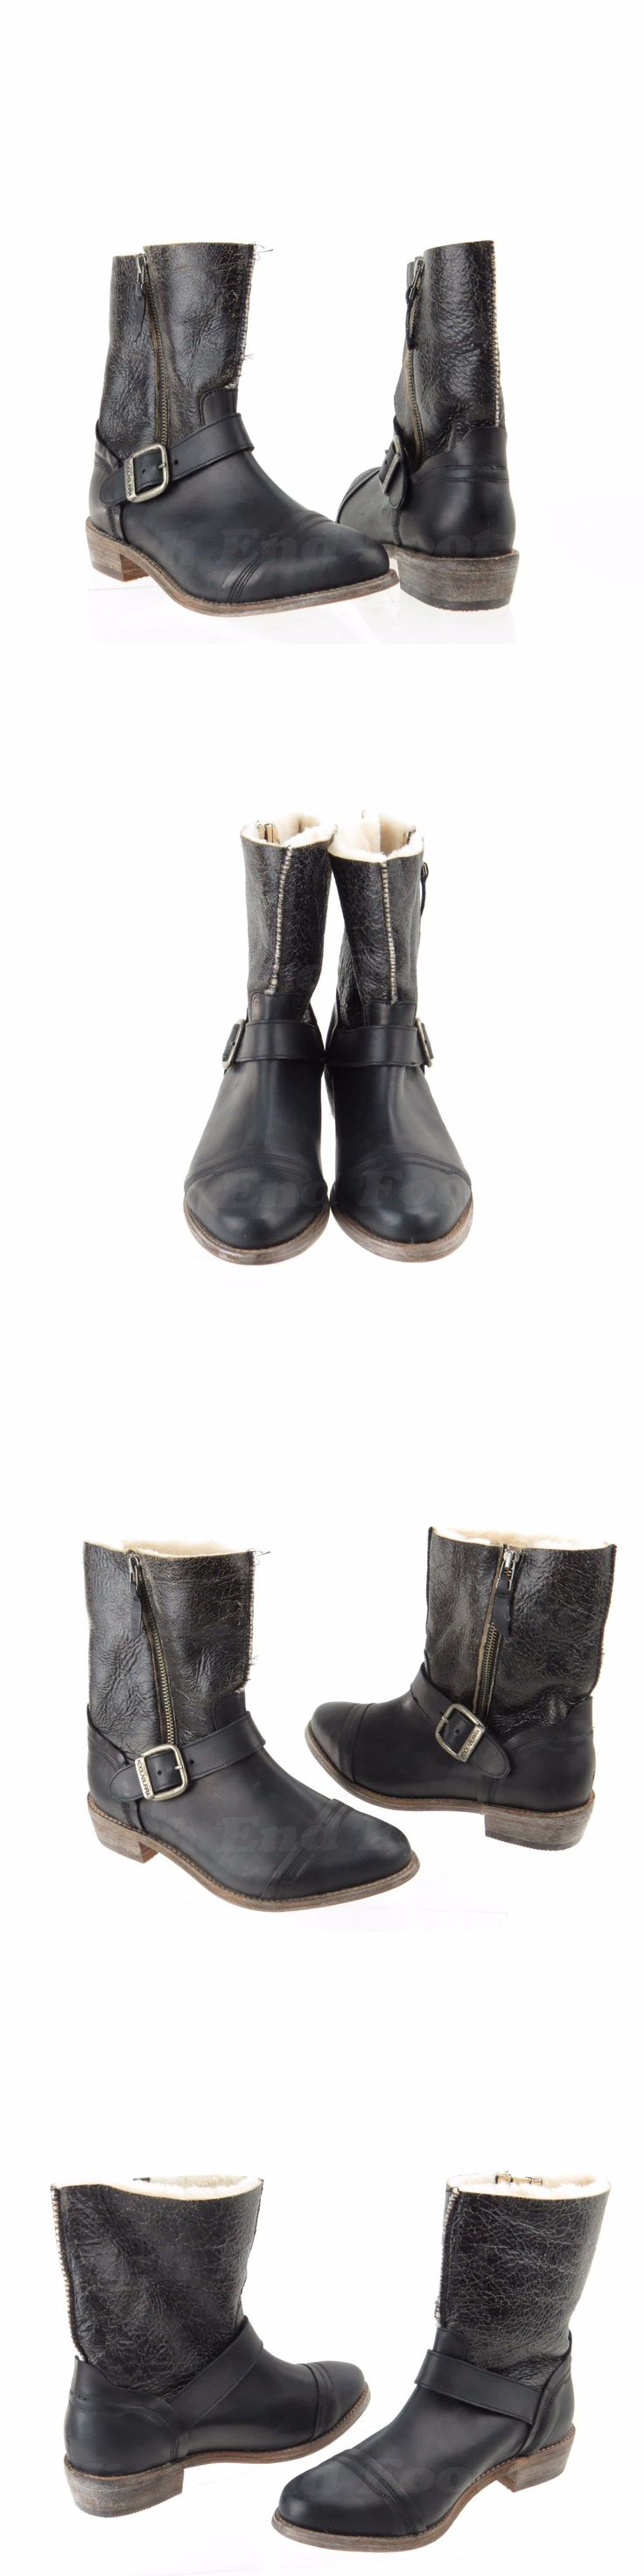 Women Boots: Koolaburra 7725 Womens Shoes Black Leather Fur Ankle Boots Size 8 M, Eu 39 New! -> BUY IT NOW ONLY: $109.99 on eBay!